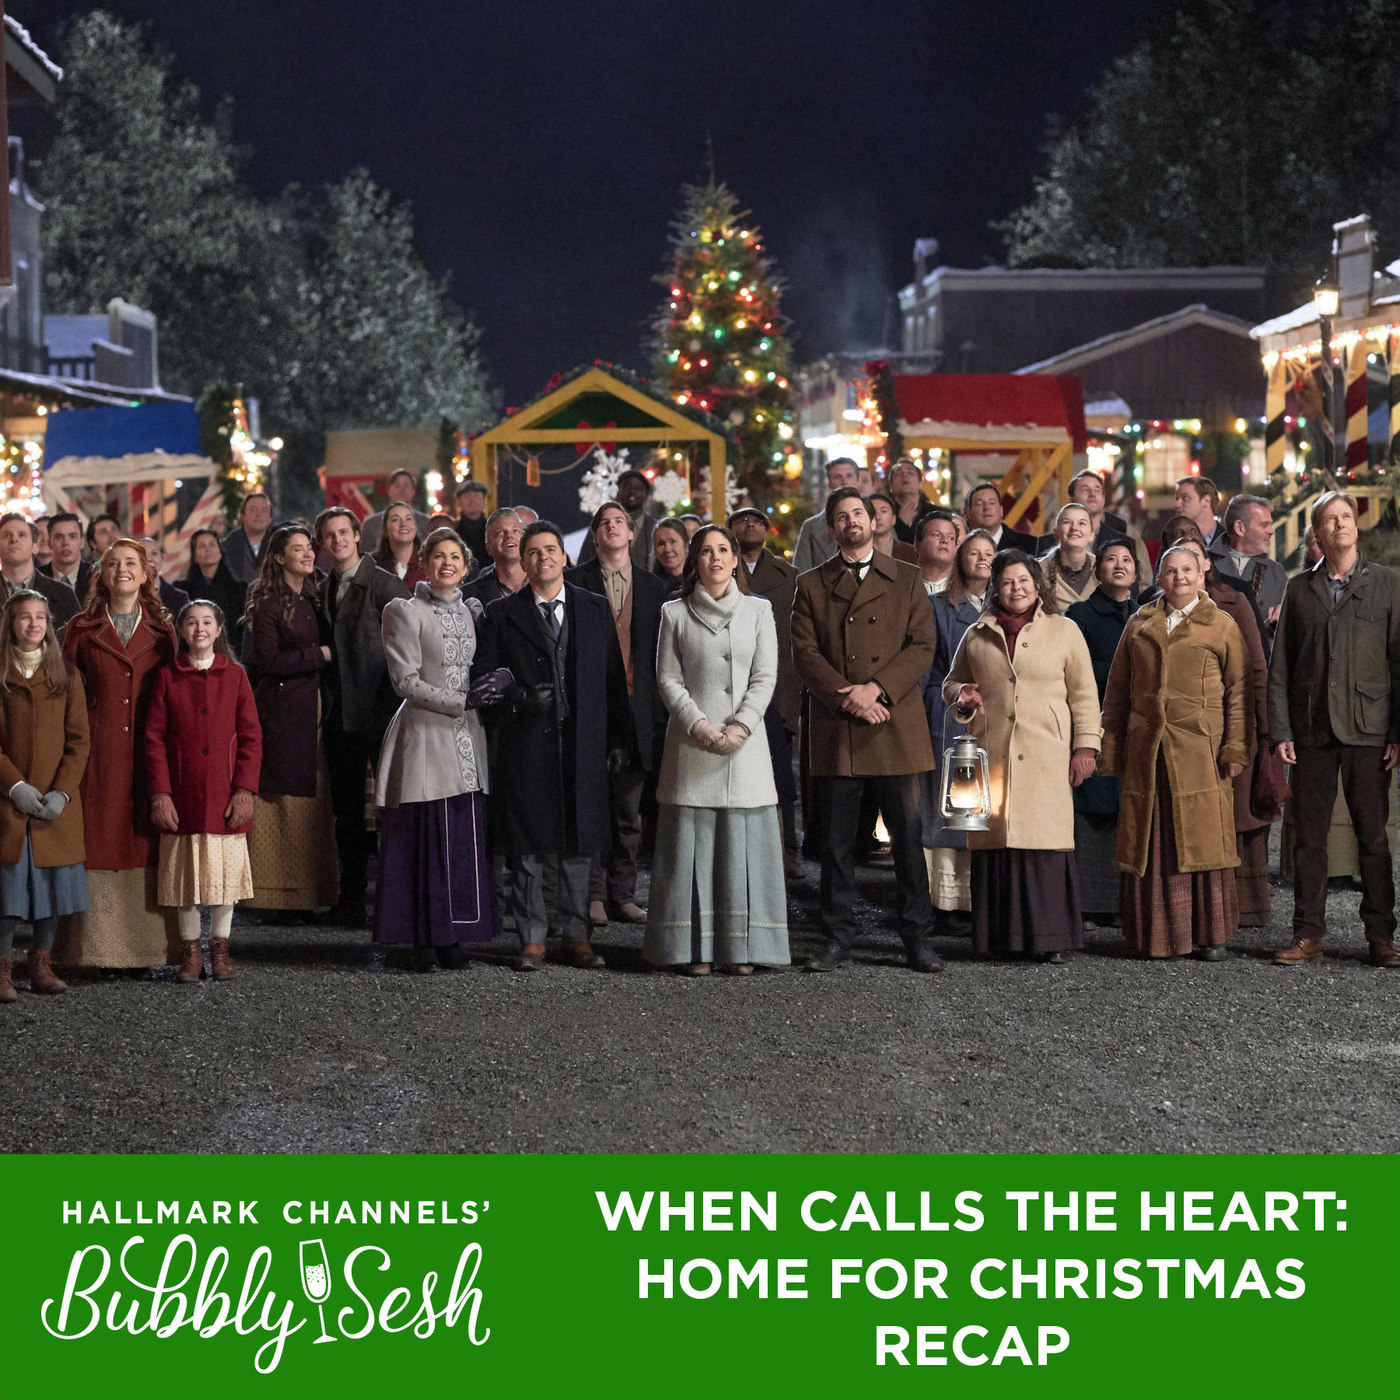 When Calls the Heart: Home for Christmas Recap